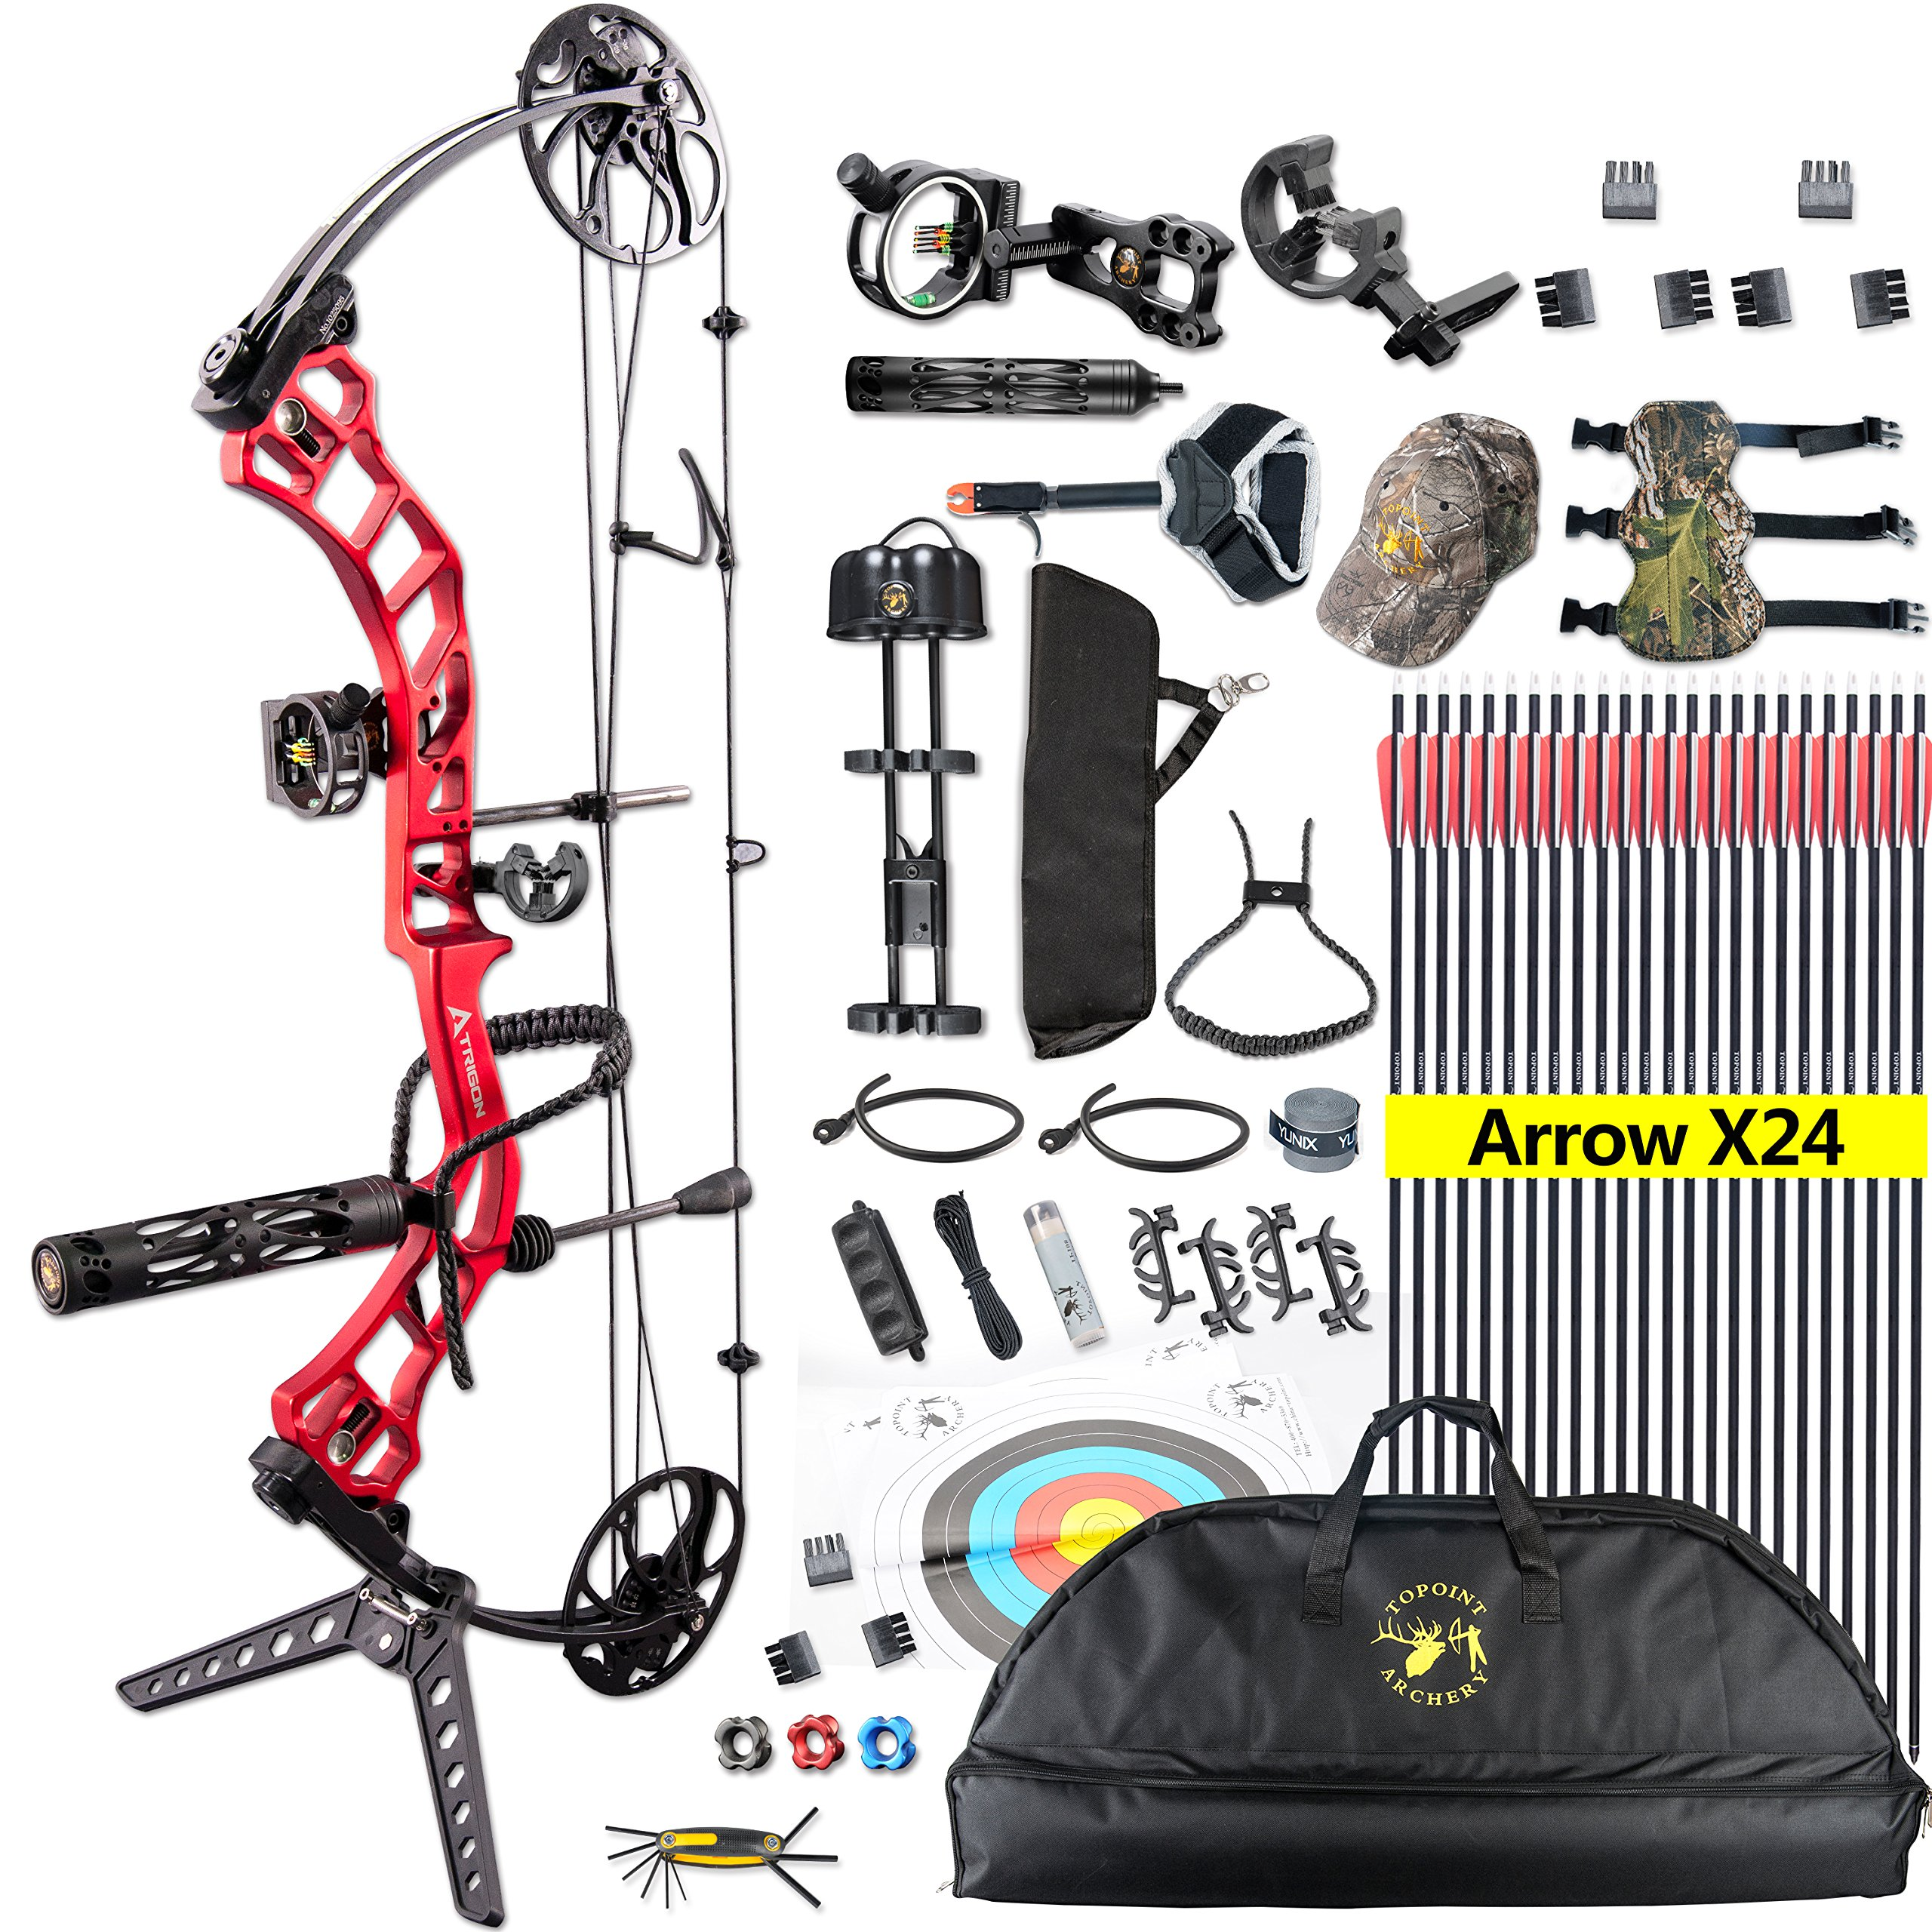 TOPOINT Trigon Compound Bow Full Package,CNC Milling Riser,USA Gordon Composites Limb,BCY String,19''-30'' Draw Length,19-70Lbs Draw Weight,IBO 320fps (RED)